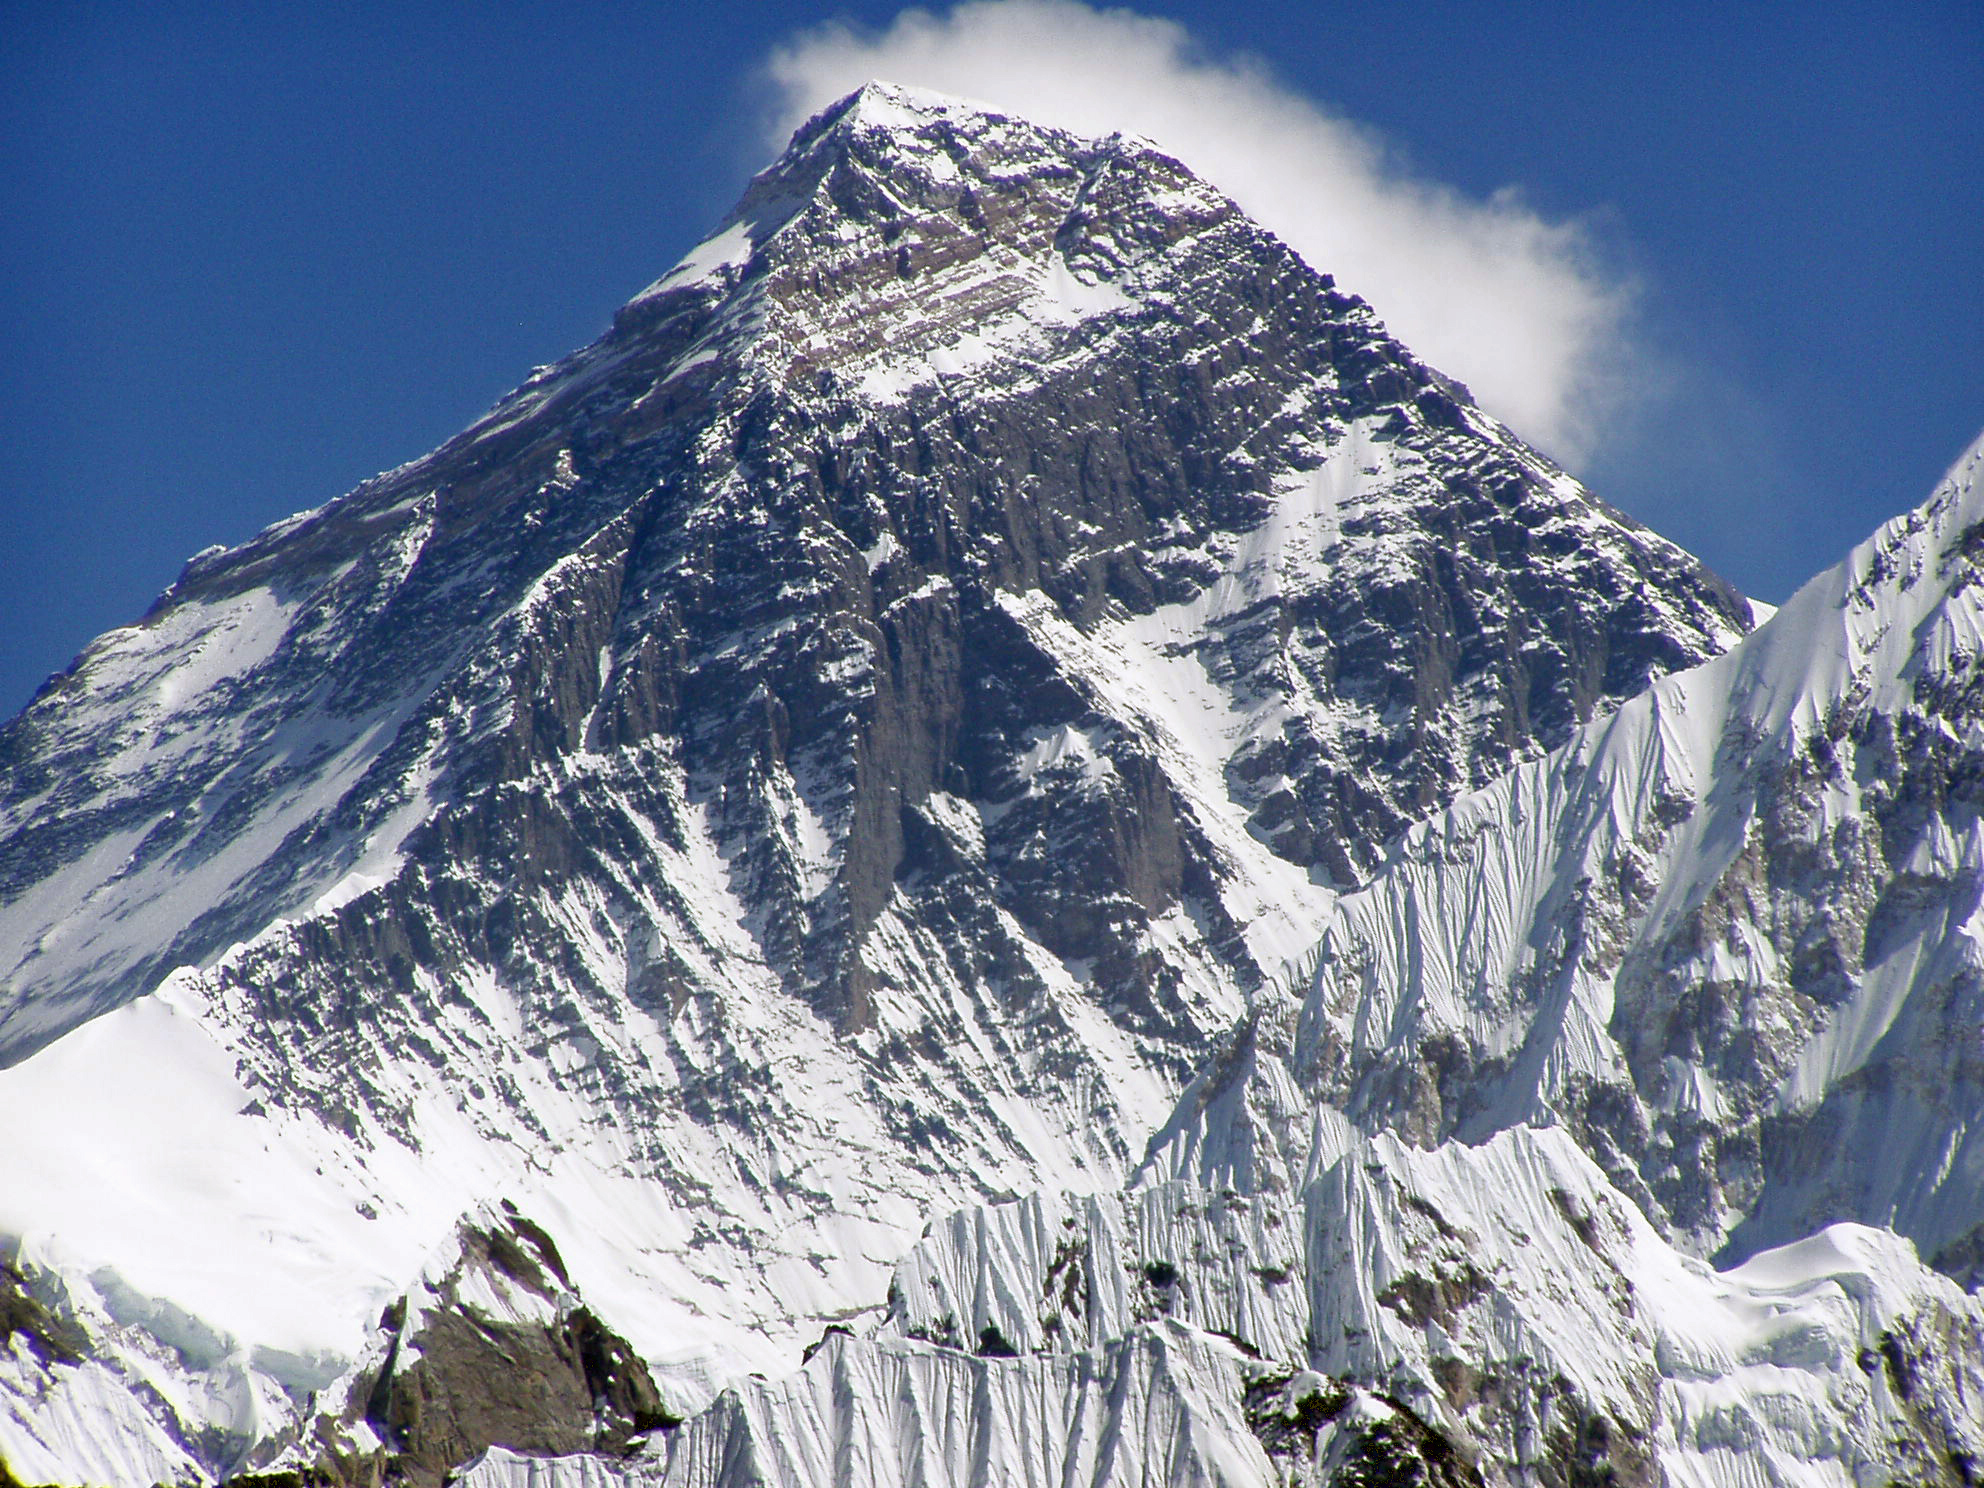 mount everest from down to up